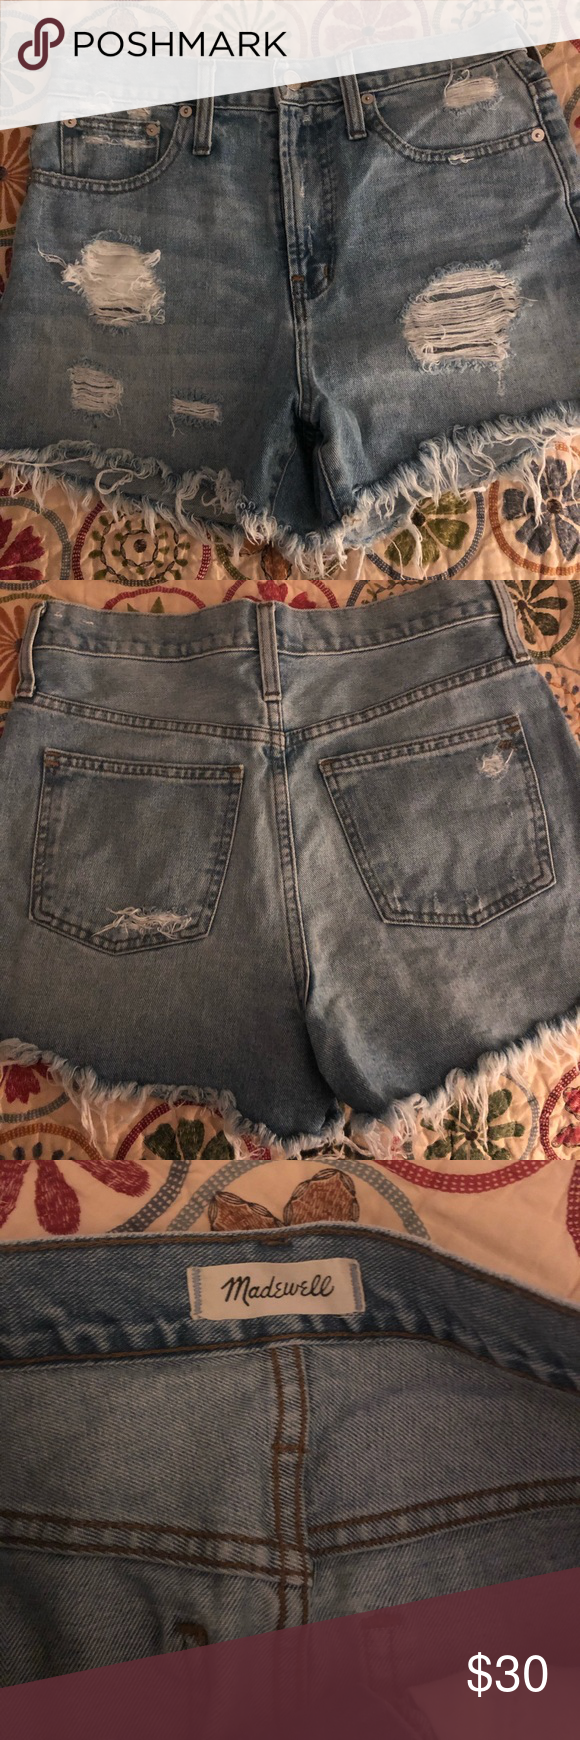 Madewell high waisted denim cutoff shorts Madewell high waisted cutoffs, size 25, great condition no stains or noticeable wear Madewell Shorts Jean Shorts #denimcutoffshorts Madewell high waisted denim cutoff shorts Madewell high waisted cutoffs, size 25, great condition no stains or noticeable wear Madewell Shorts Jean Shorts #denimcutoffshorts